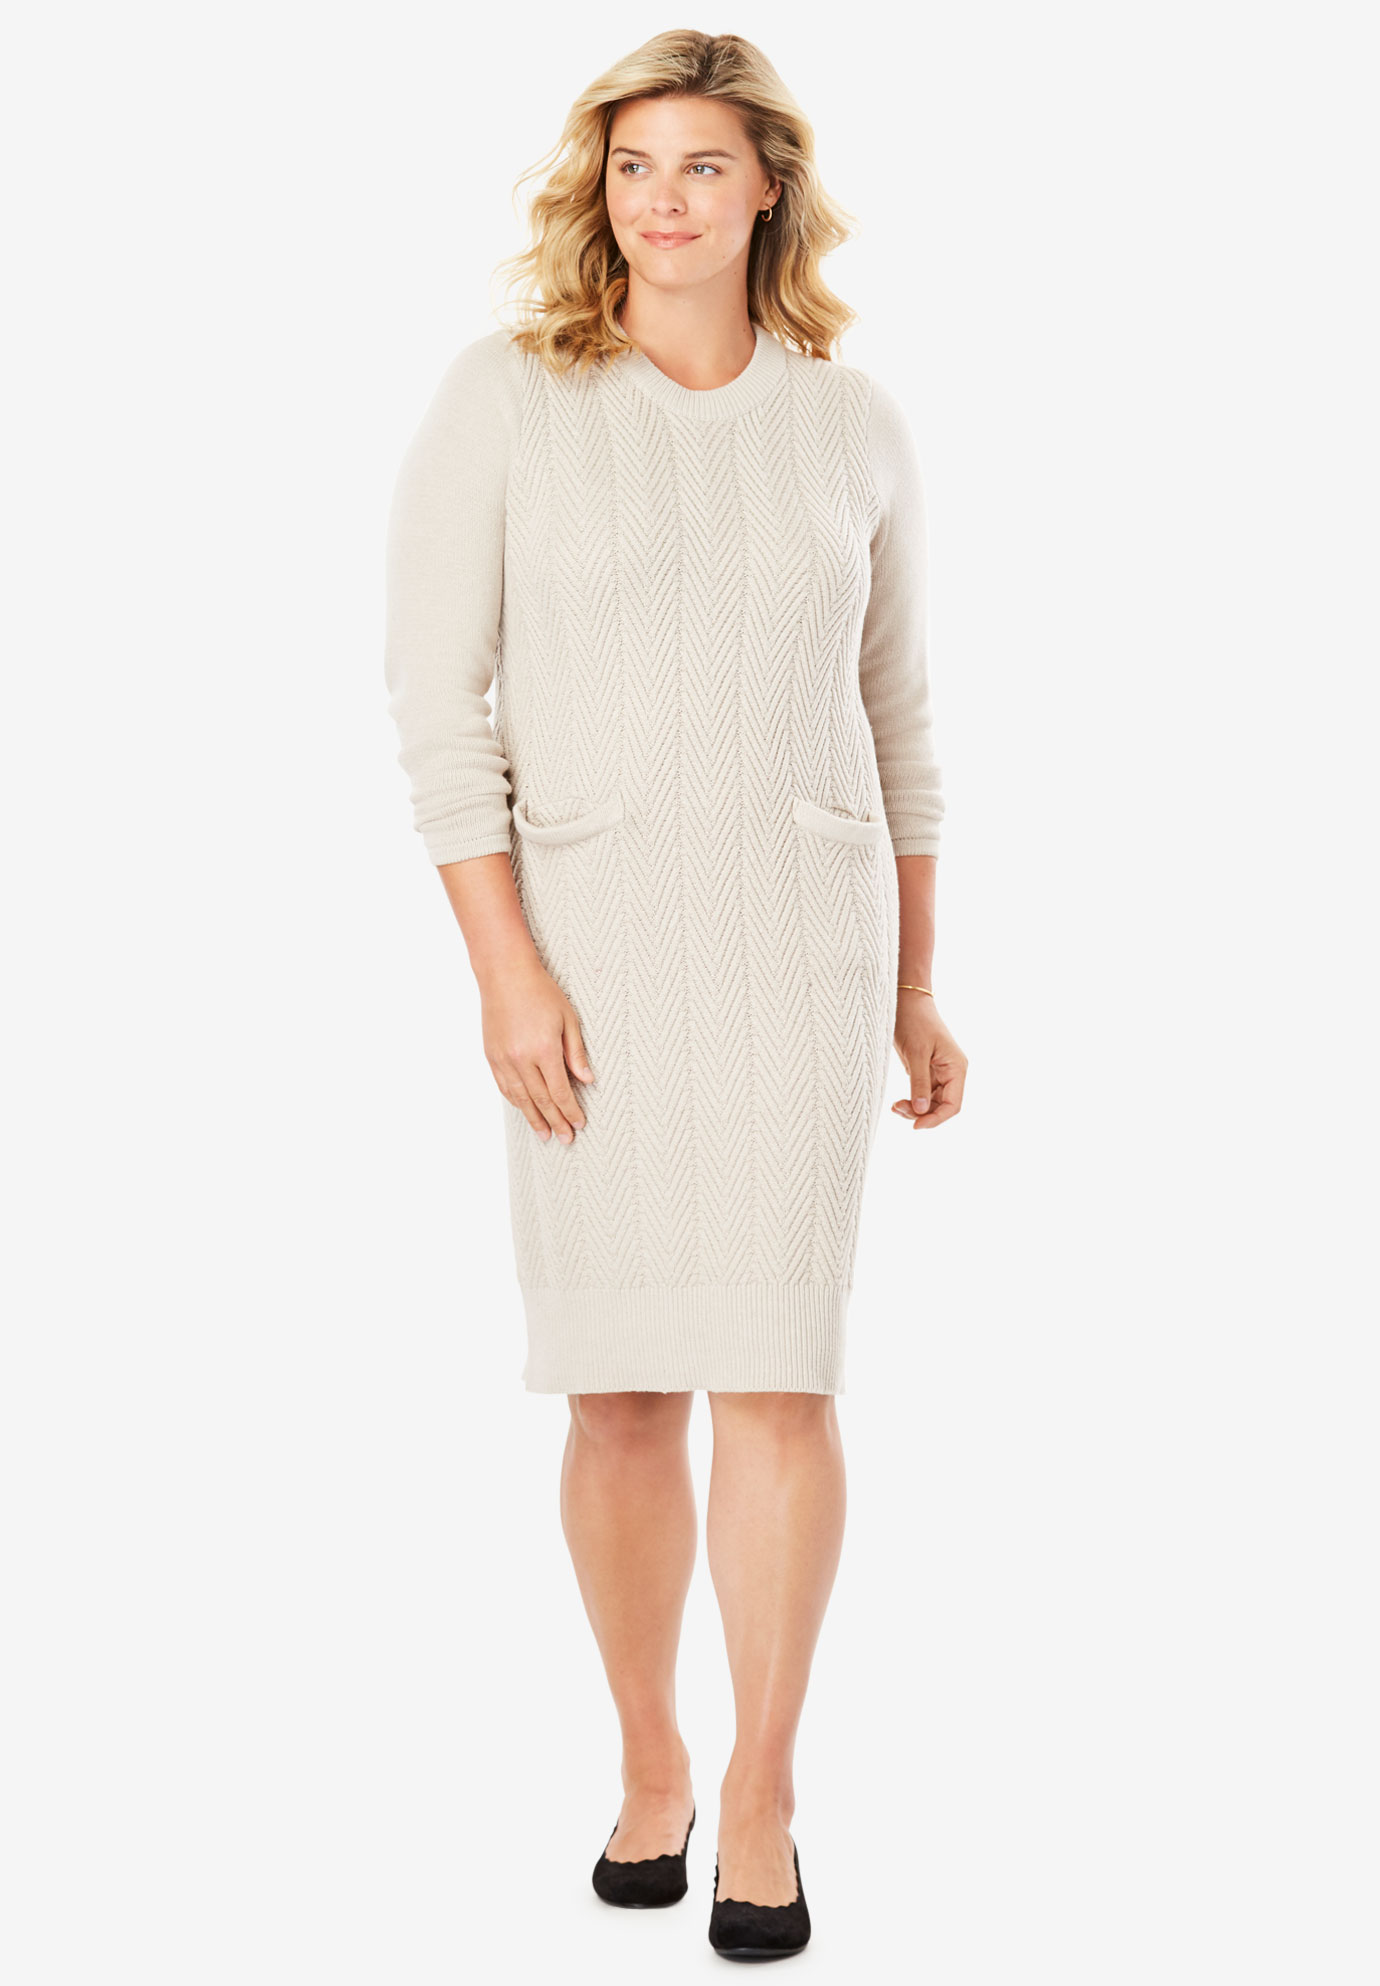 Chevron Stitch Sweater Dress| Plus Size Casual Dresses | Full Beauty